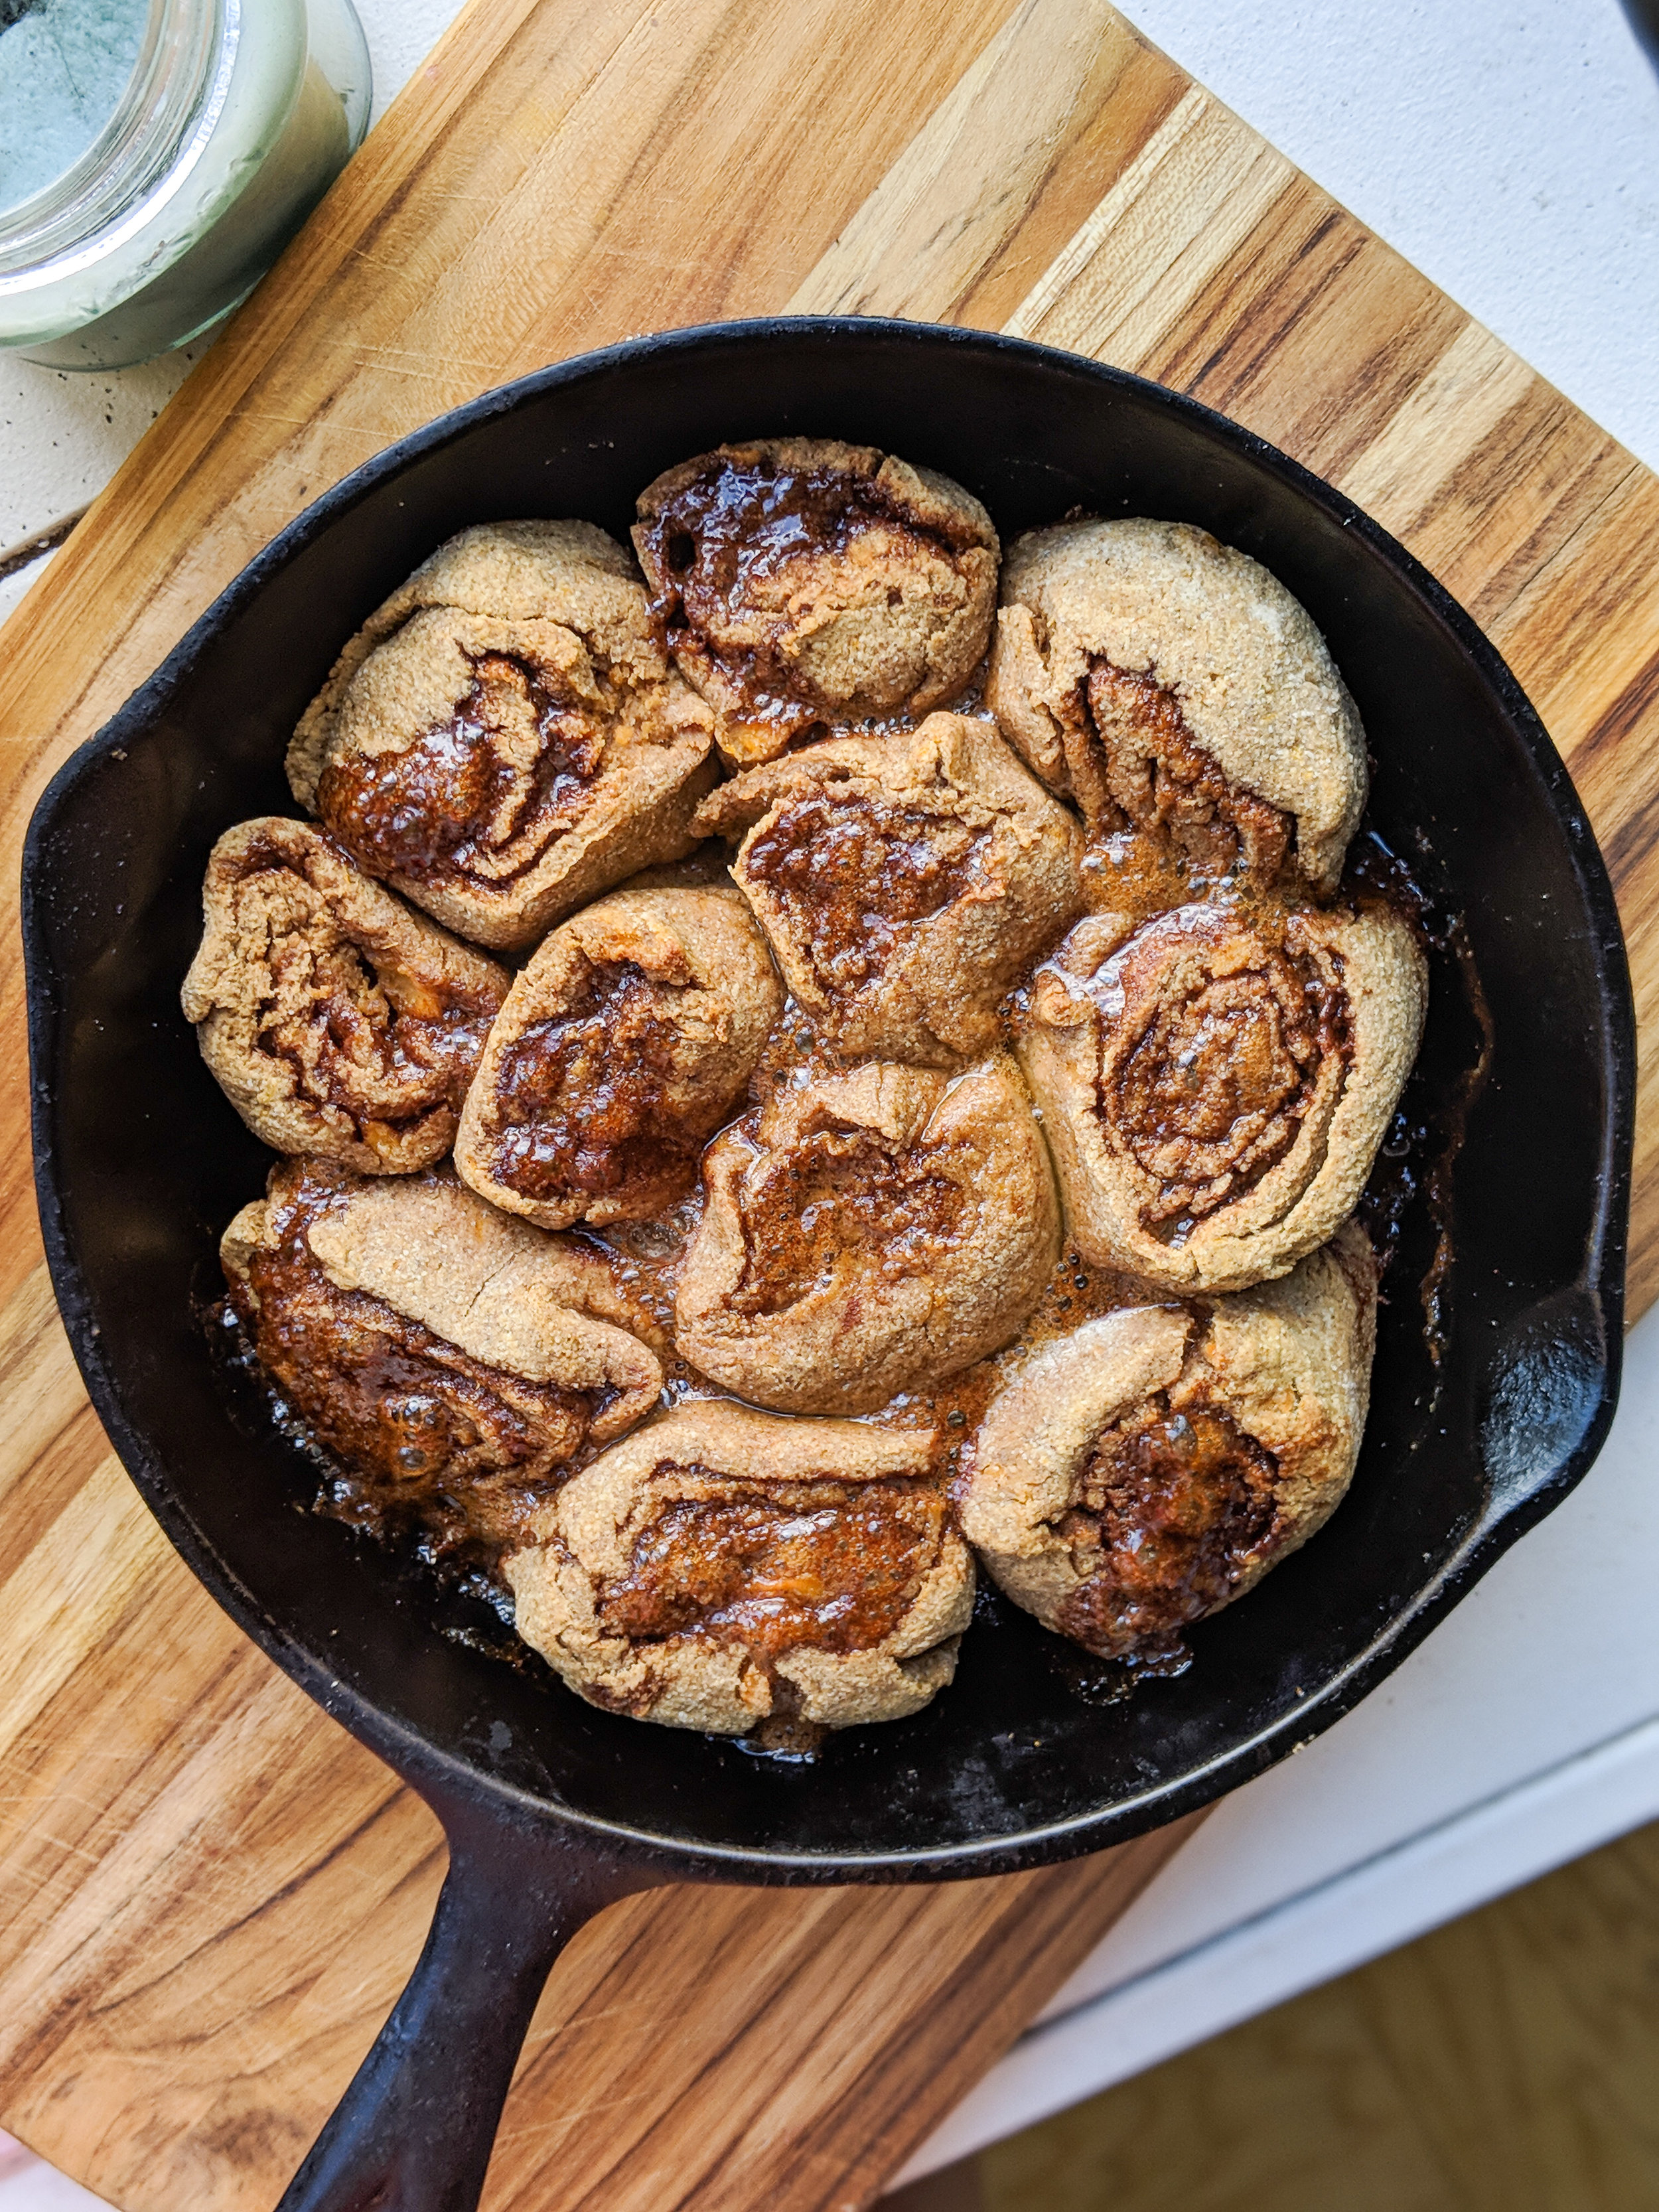 A skillet of sweet potato oat flour cinnamon rolls with cinnamon streusel